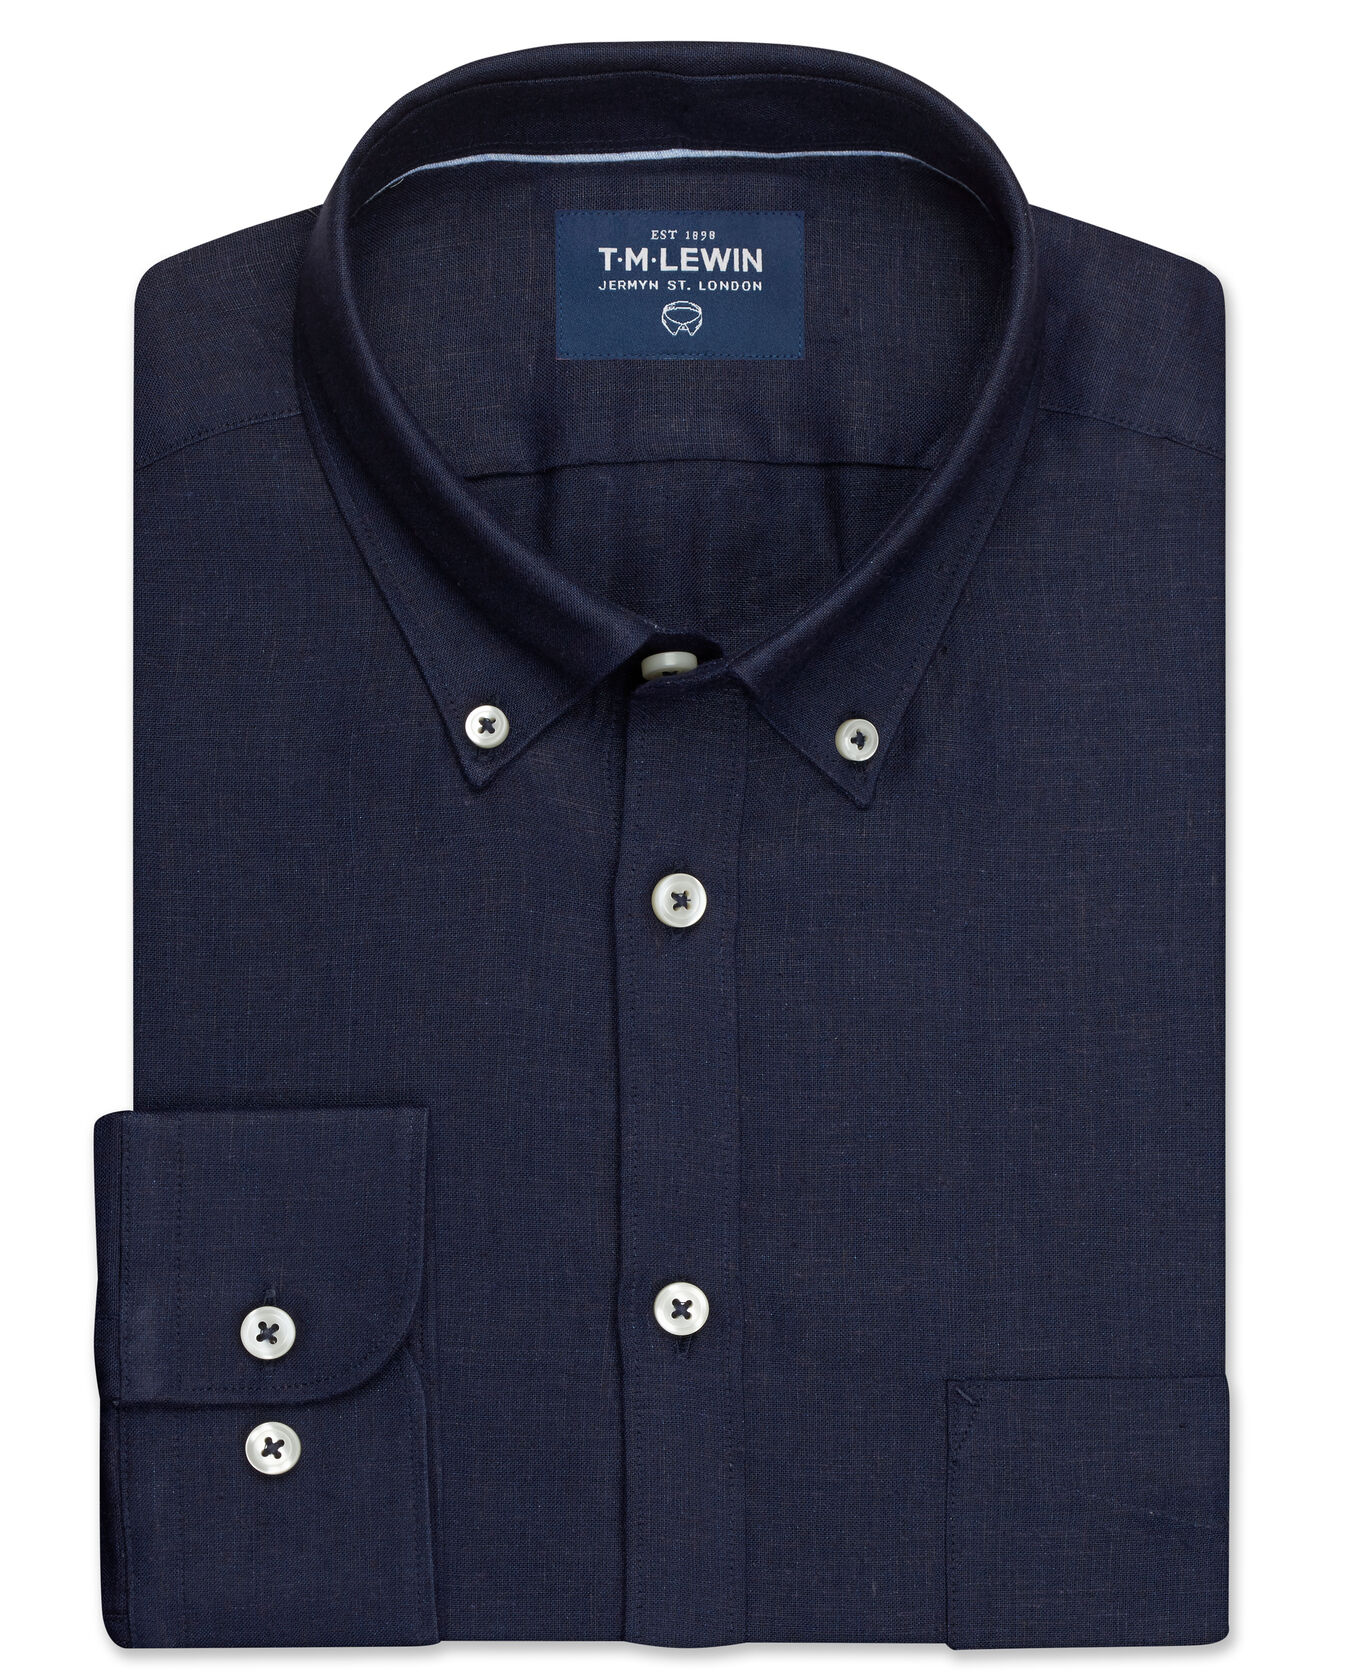 Linen Modal Slim Fit Navy Button Cuff Shirt